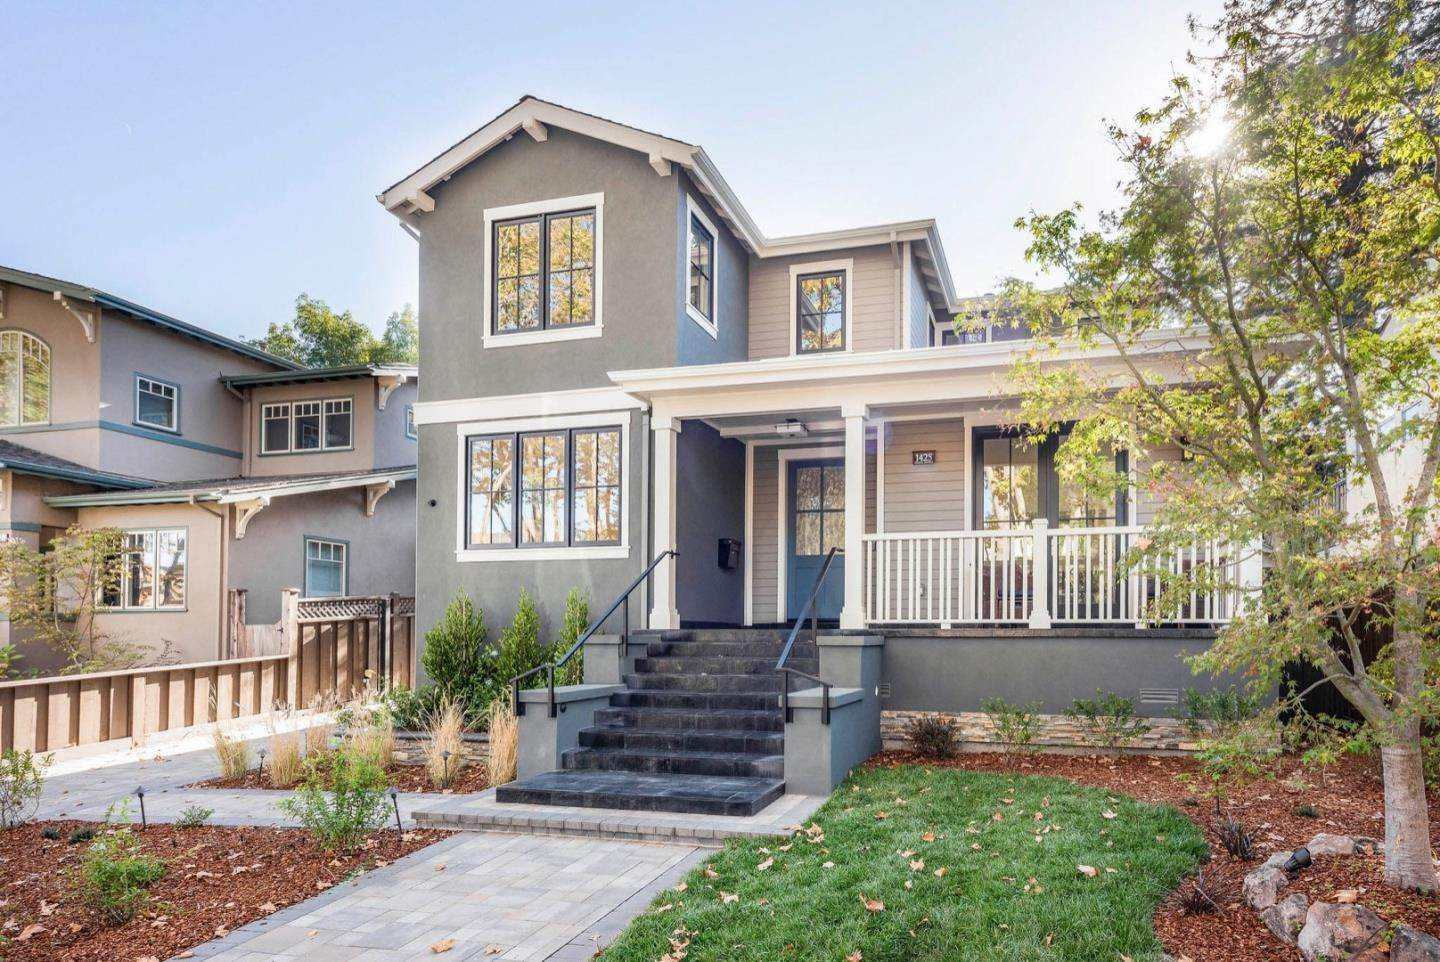 Residential for Sale at 1425 Bernal Avenue Burlingame, California 94010 United States